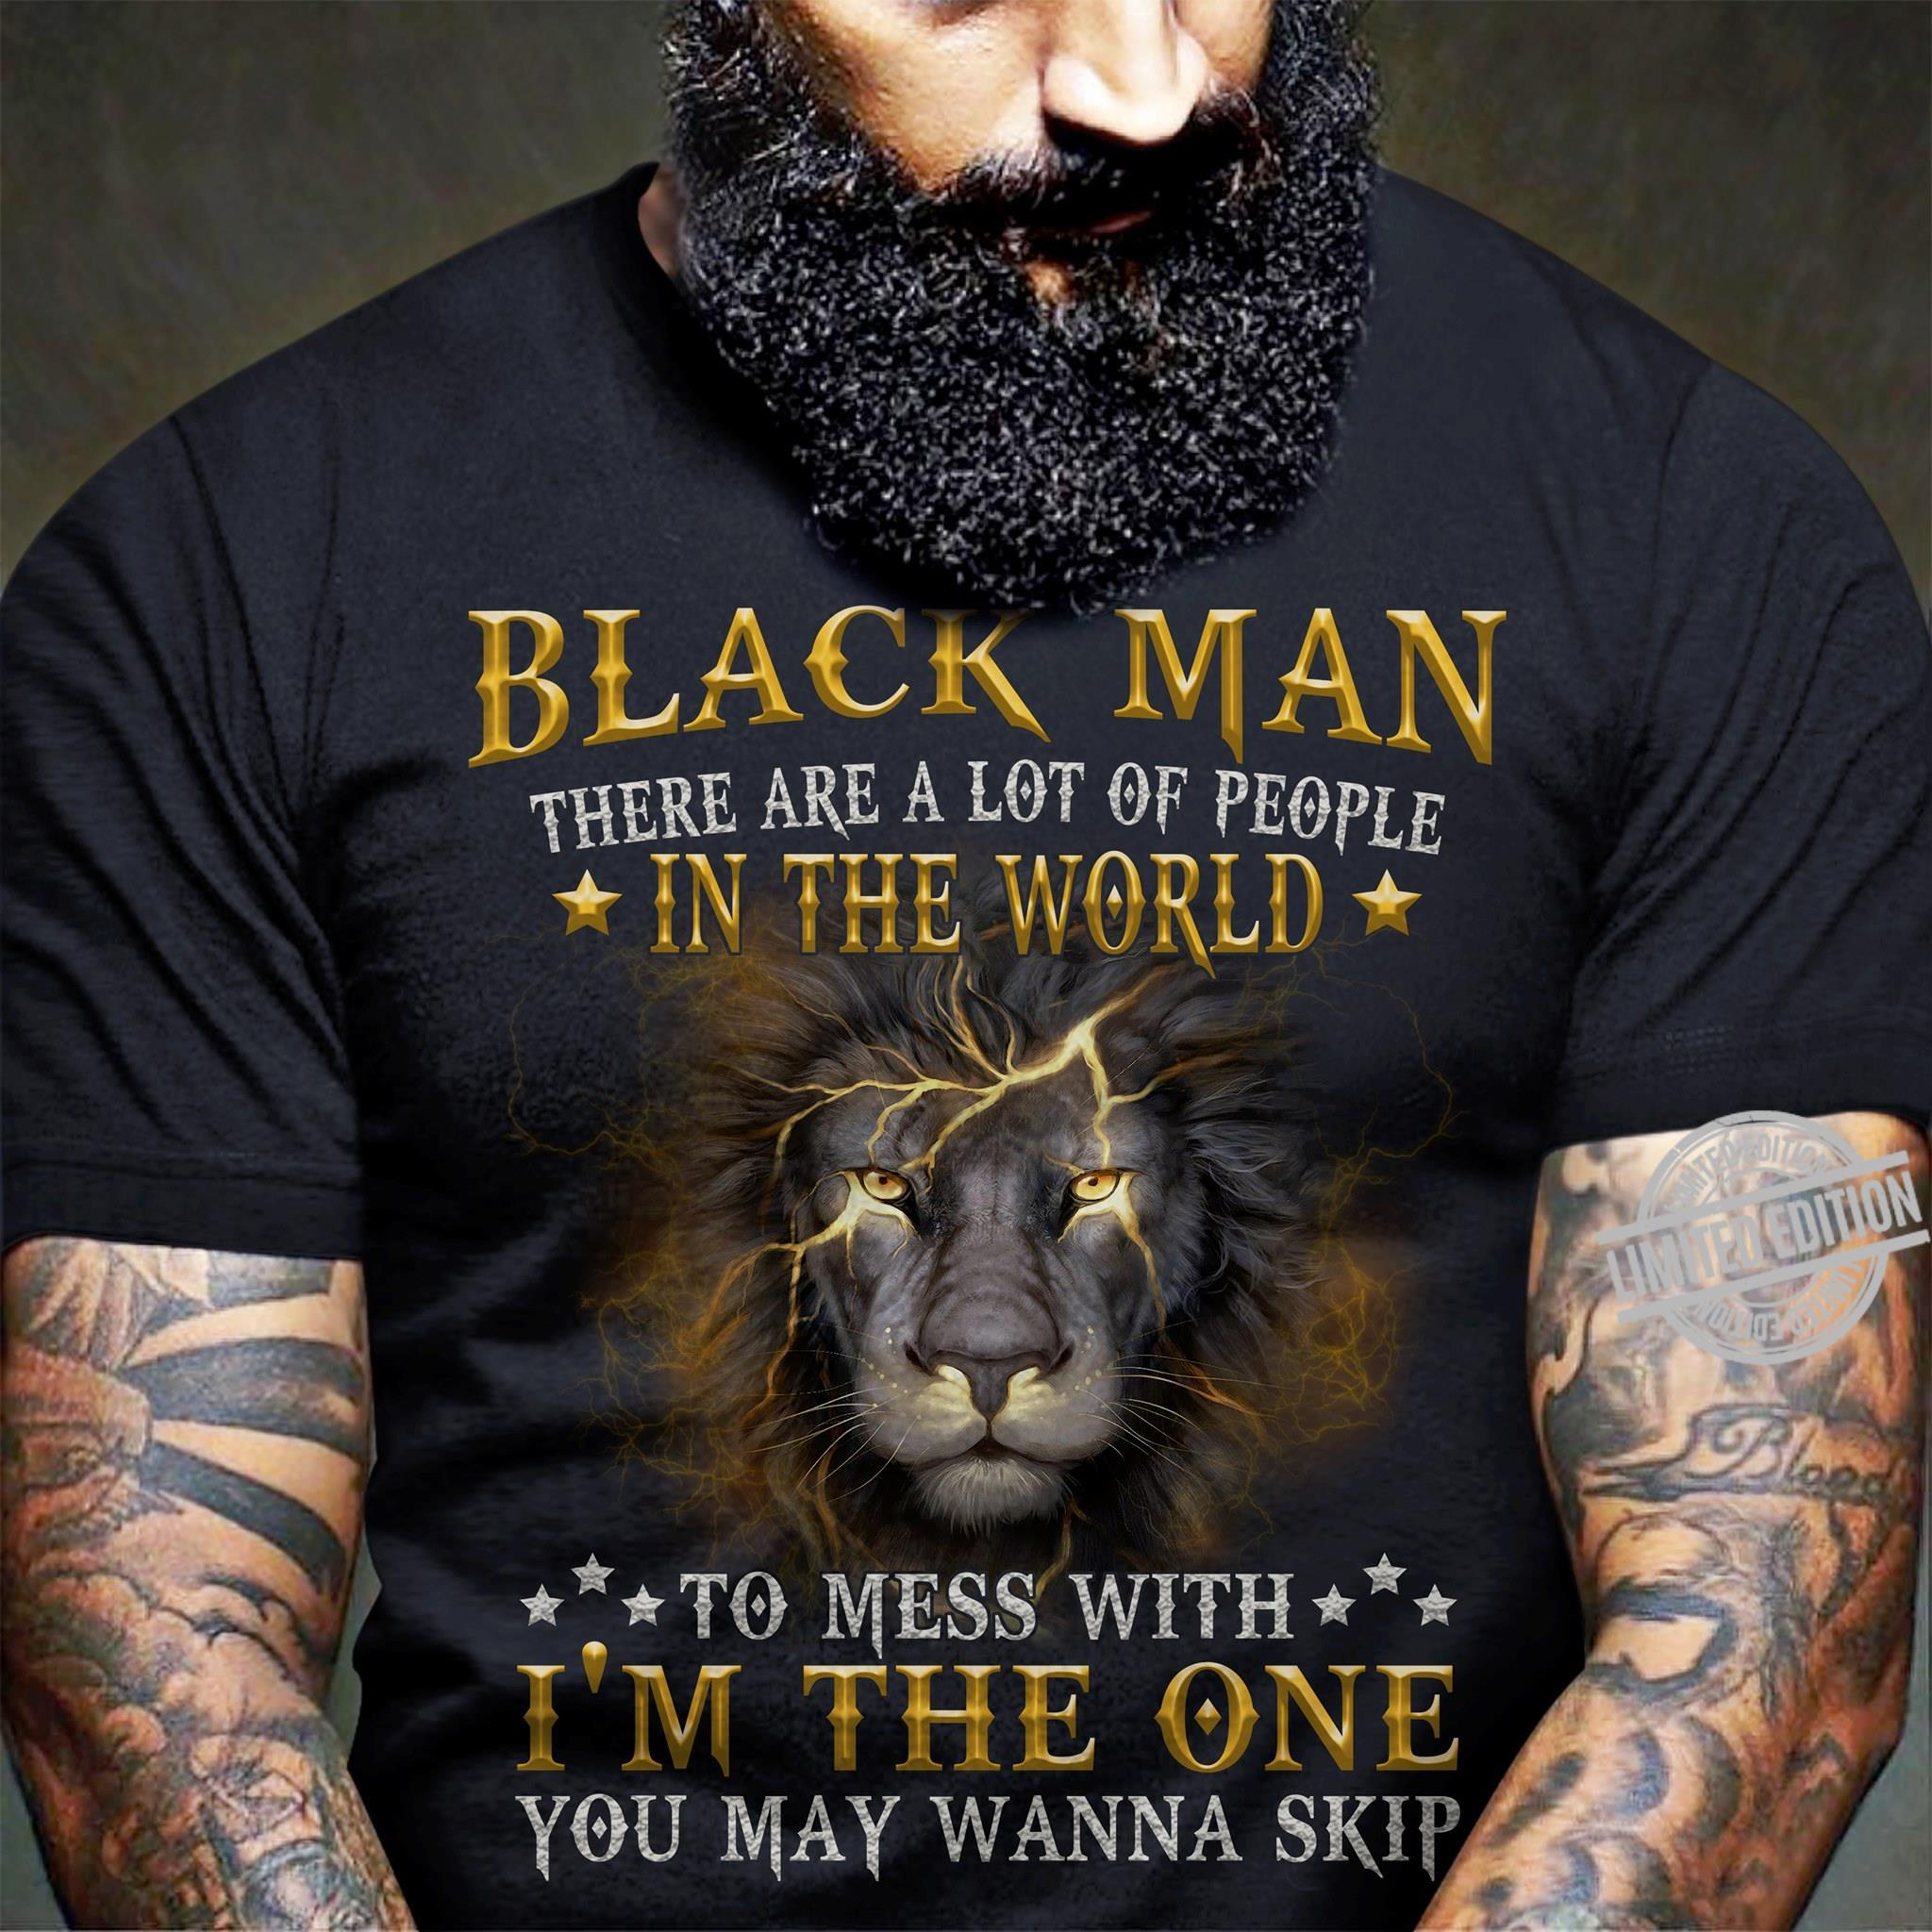 Black Man There Are A Lot Of People In The World To Mess With I'm The One You May Wanna Skip Shirt